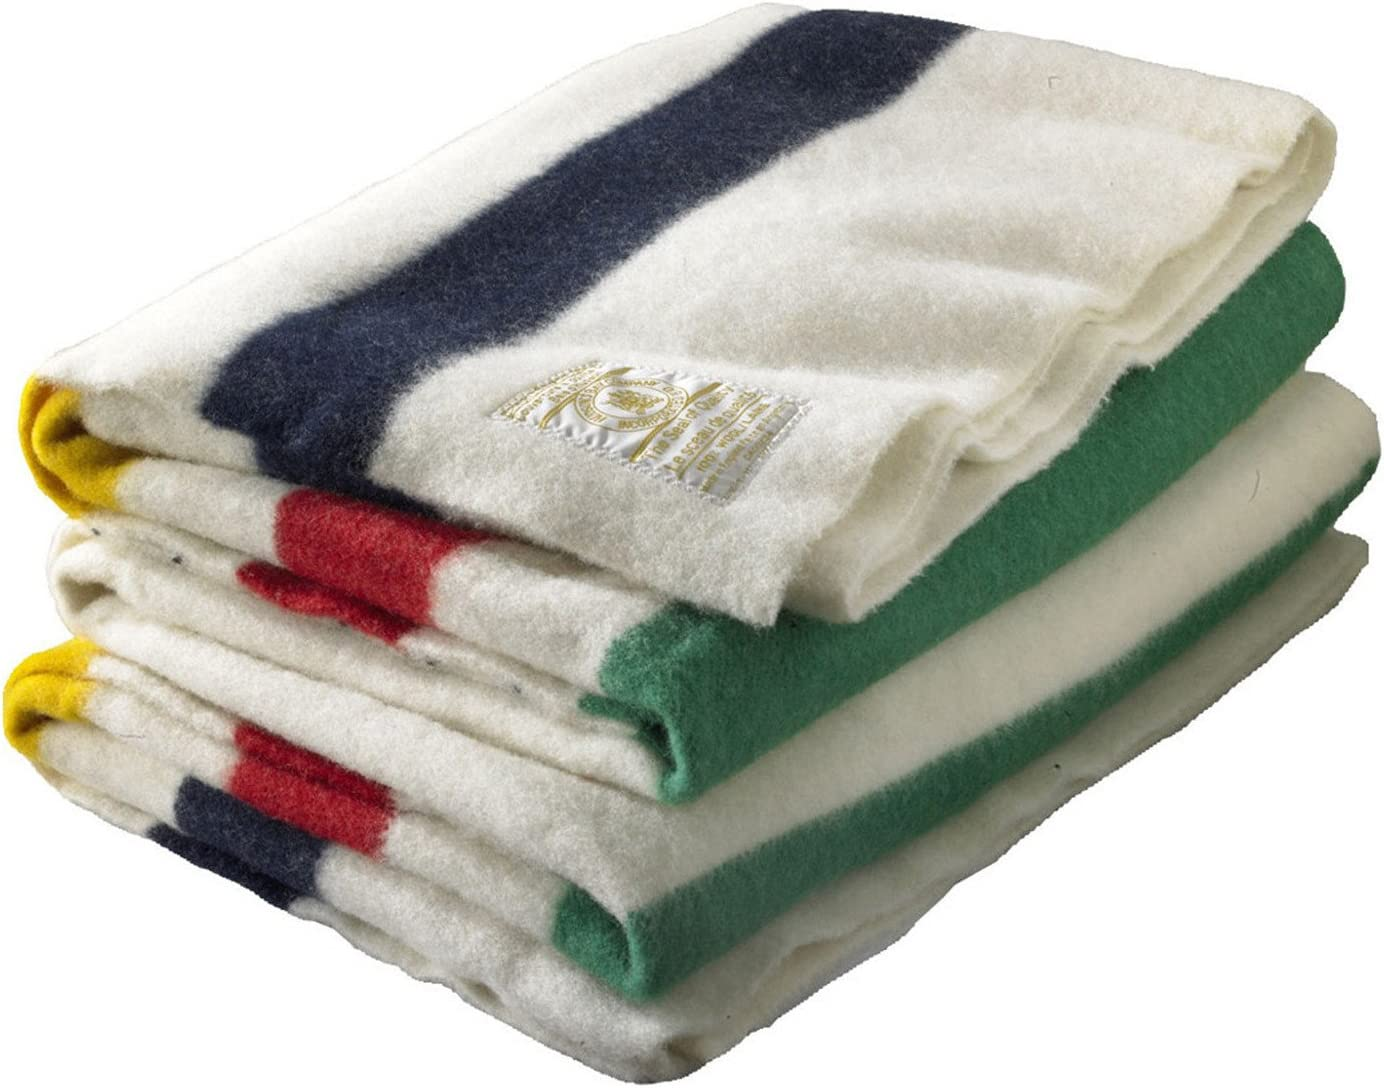 B000T2Q49A Hudson Bay 8 Point Blanket Natural with Multi Stripes 71NcBO9K5eL